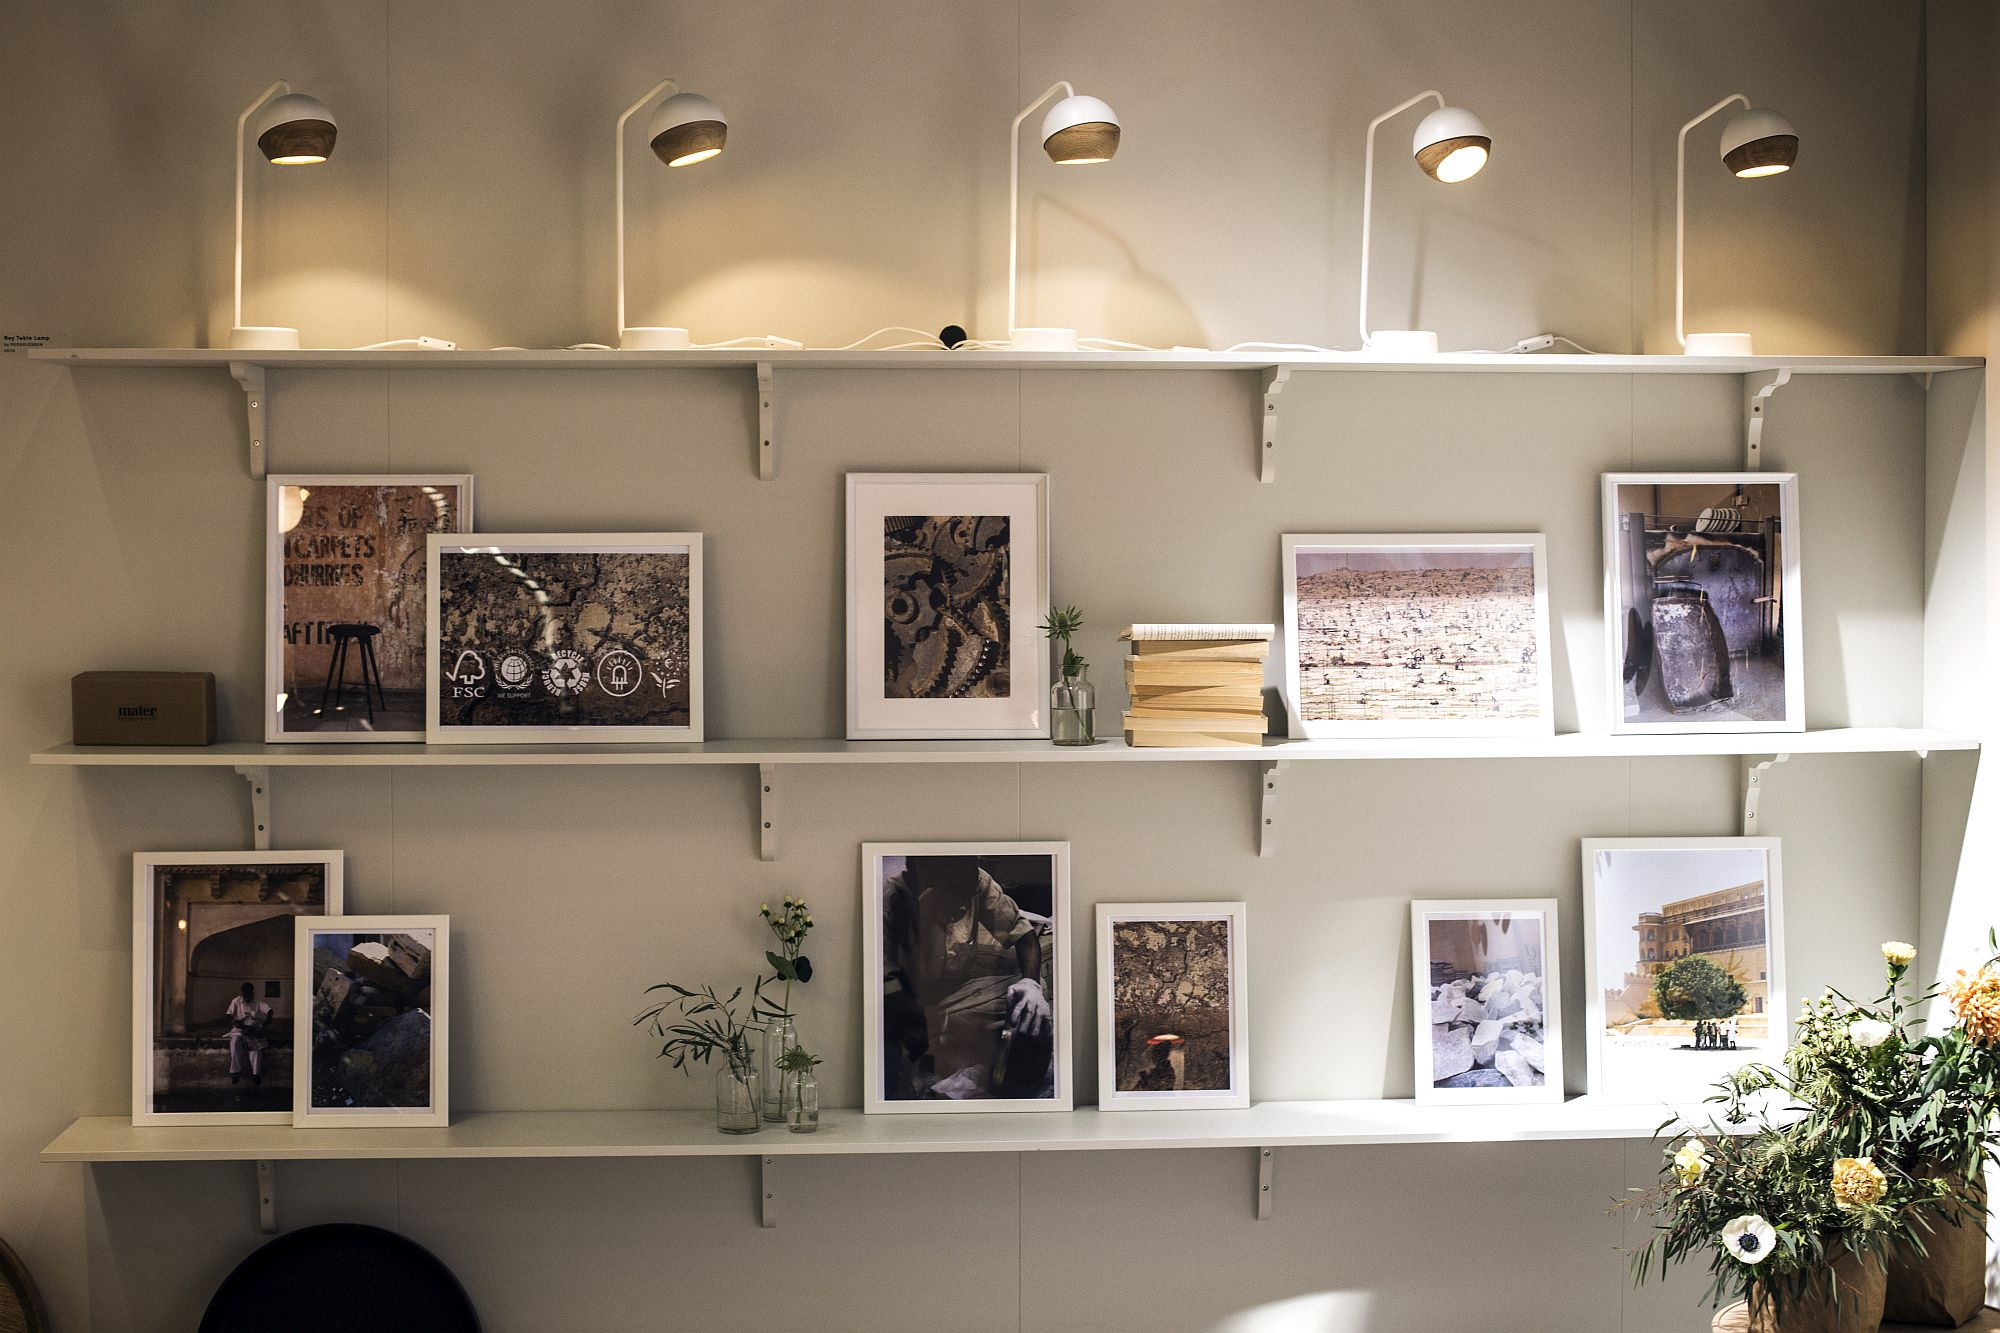 Lighting-adds-to-the-beauty-and-simplicity-of-the-floating-shelves-in-white